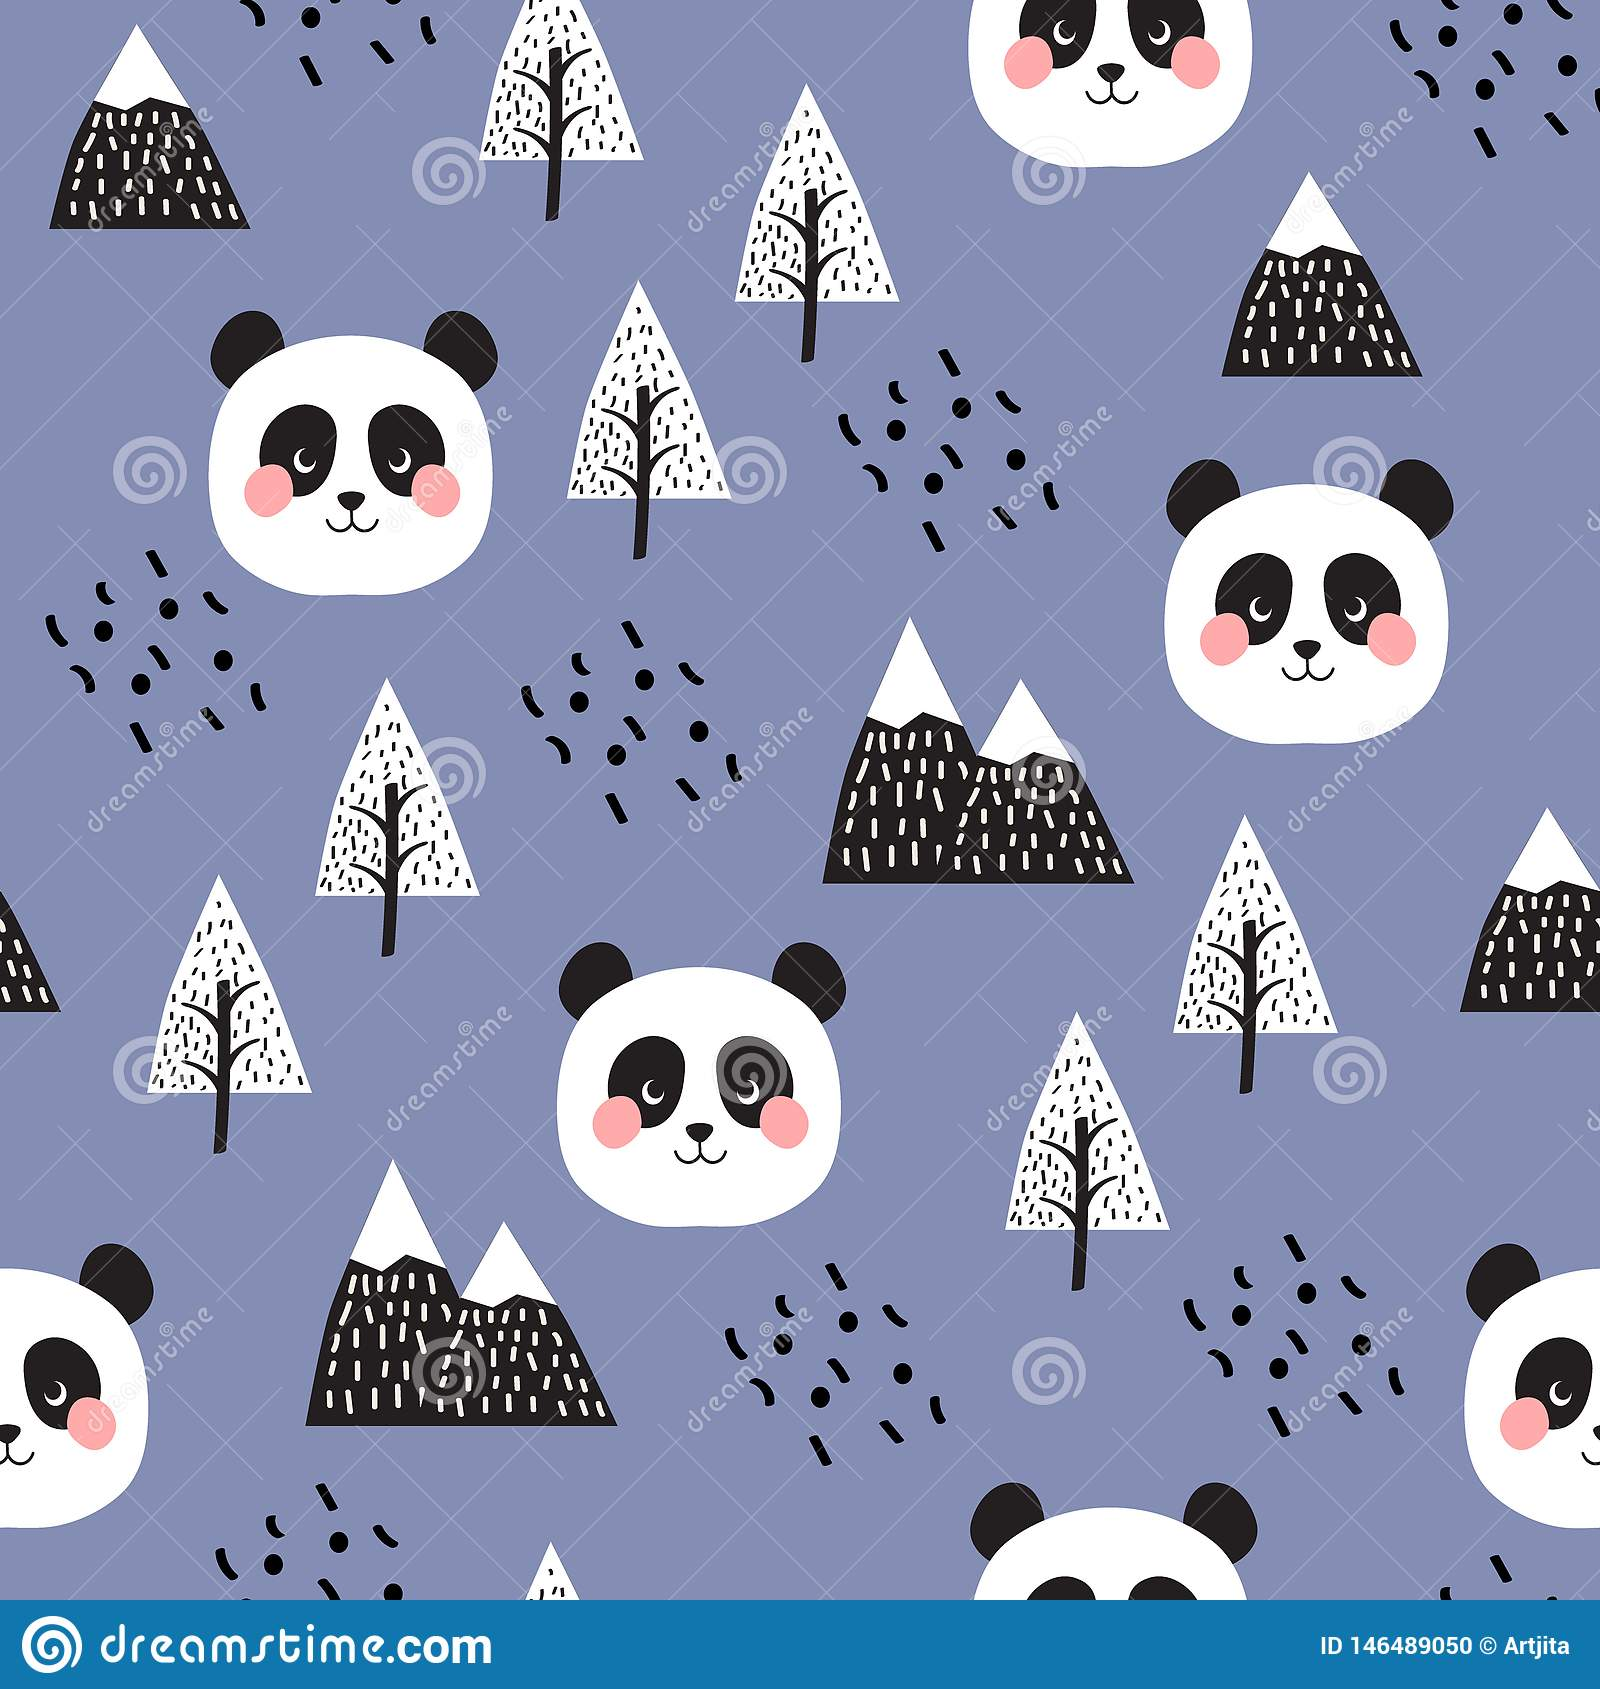 Panda Seamless Pattern Background